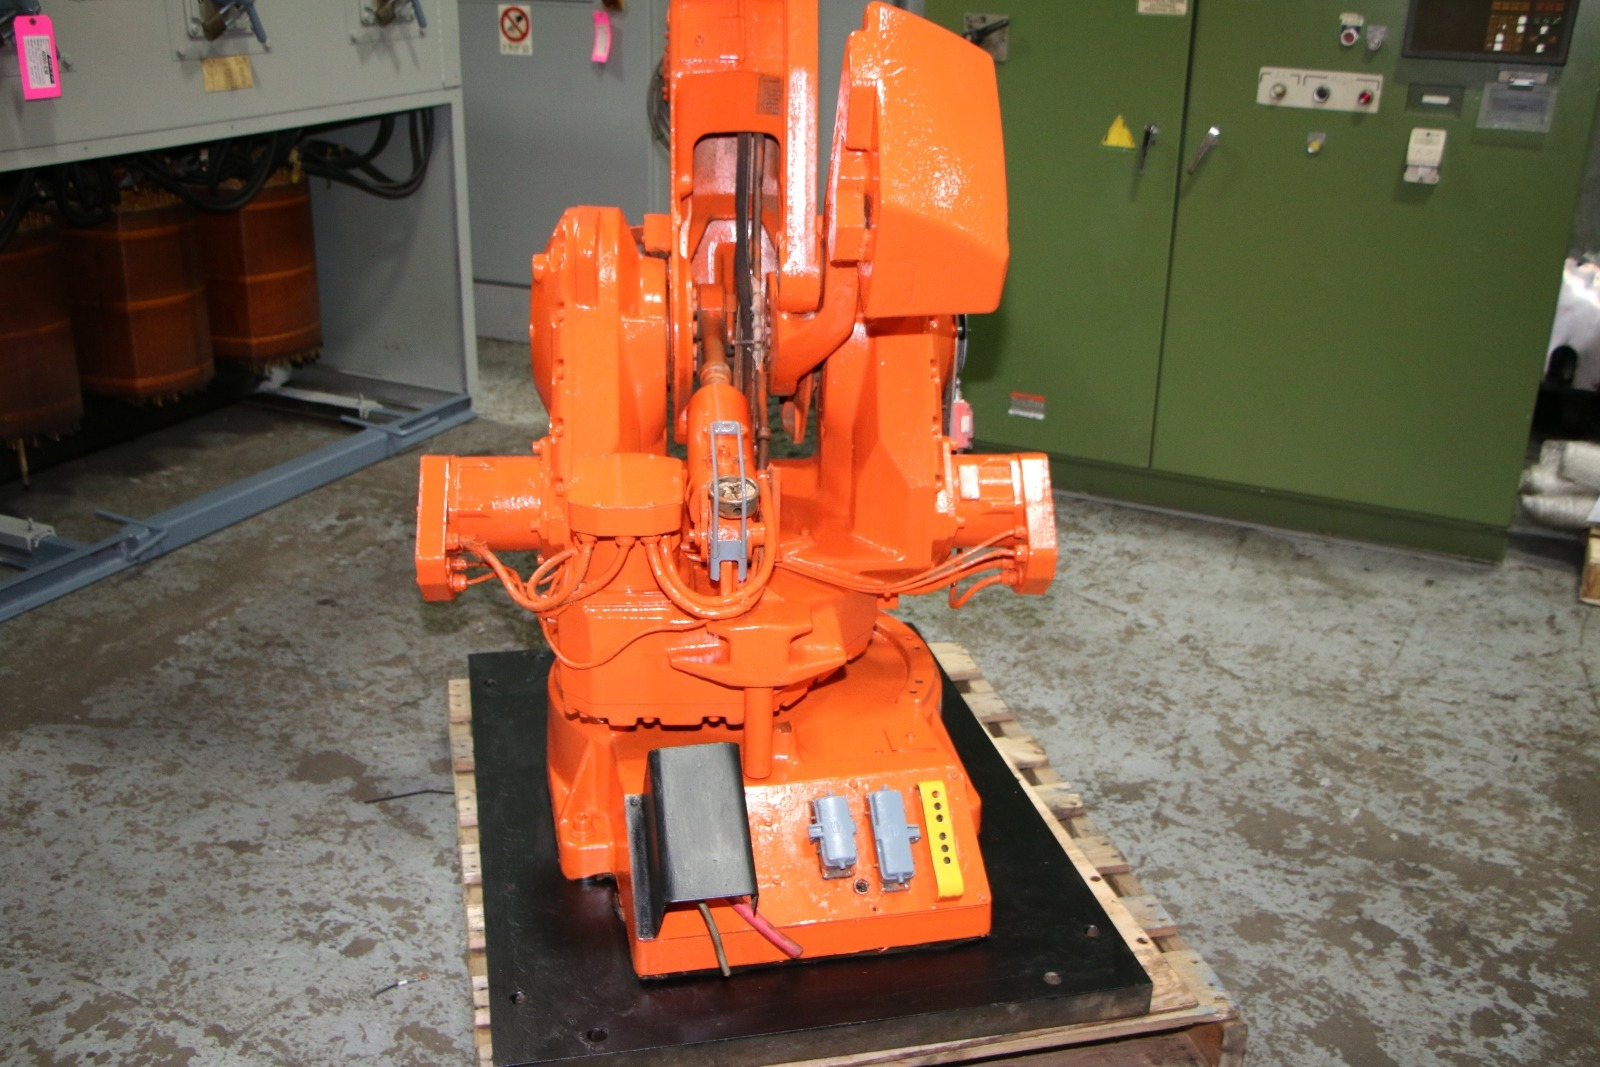 Used ABB 4400 Foundry Robot #4706